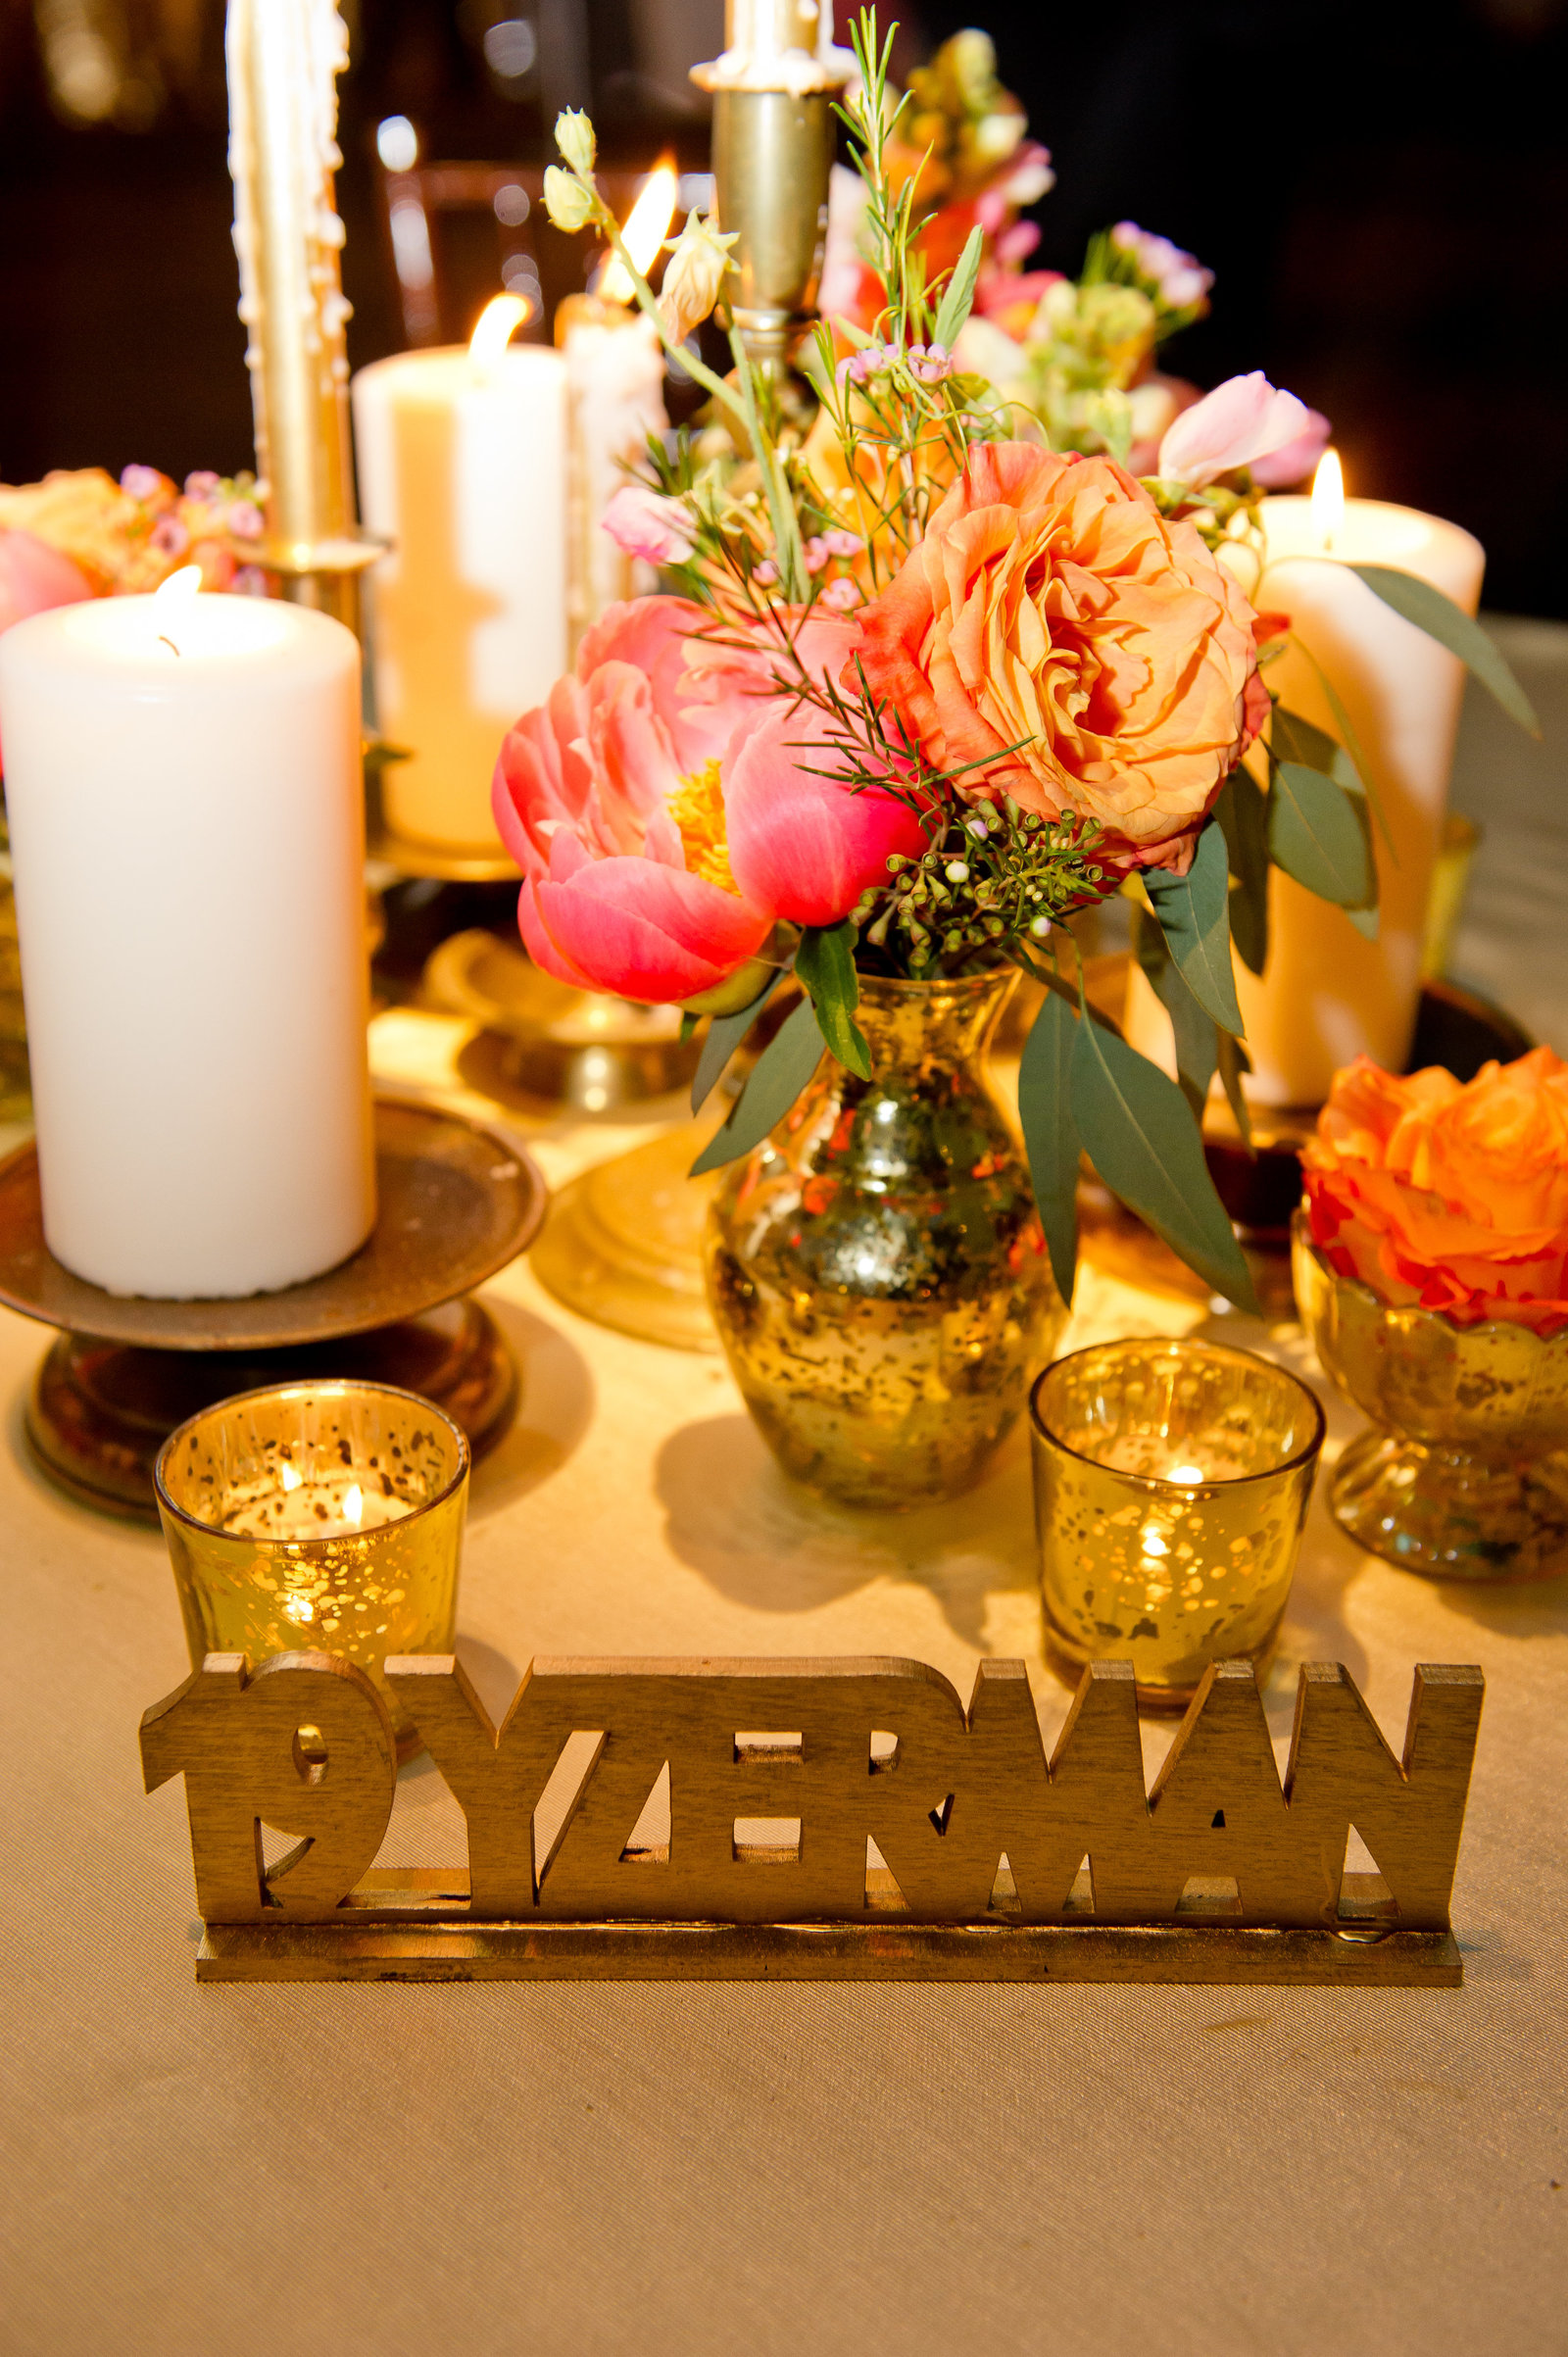 Custom event decor and table names by Ten23design with florals by A Garden Party for Jewish wedding ceremony and reception at Adventure Aquarium